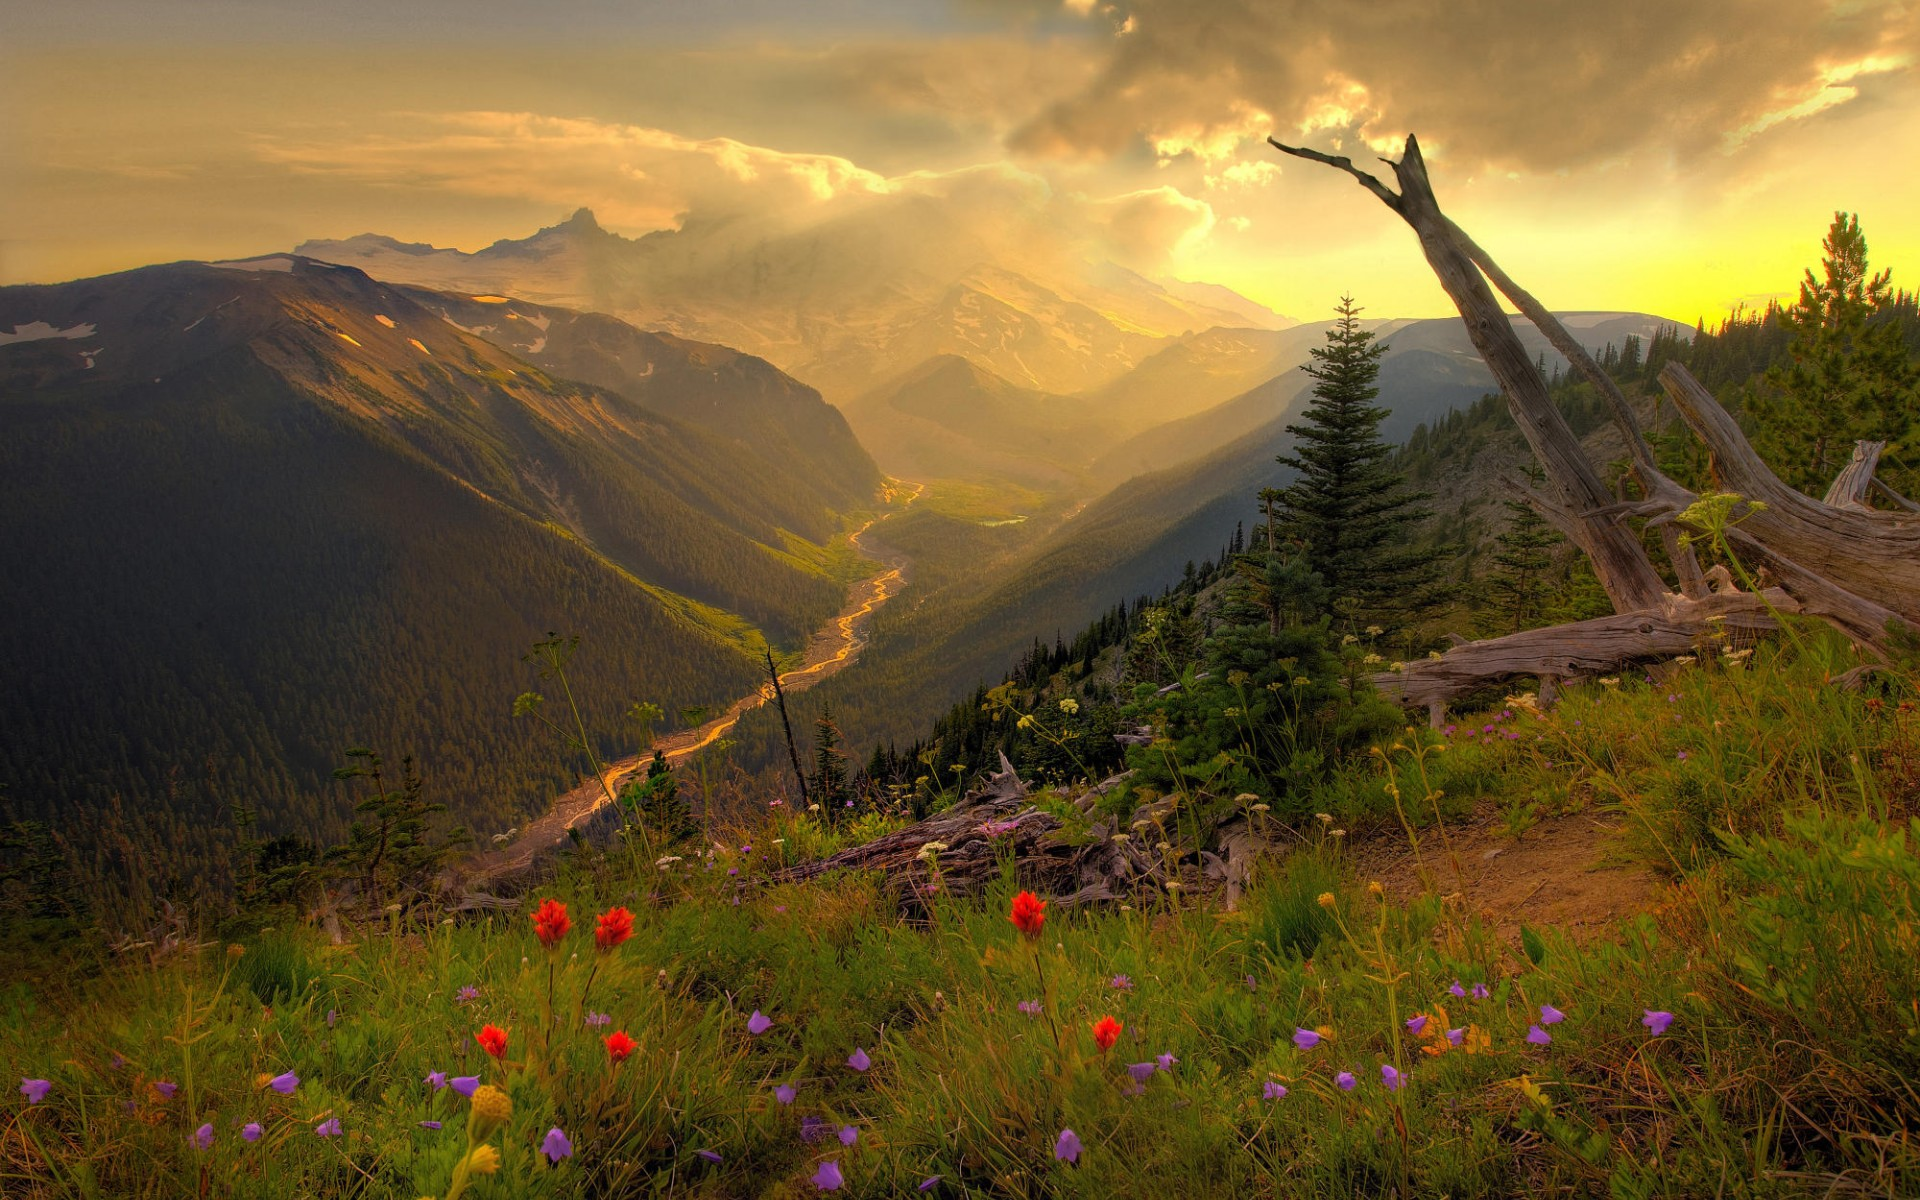 Beautiful Mountain Scenery wallpaper   481912 1920x1200